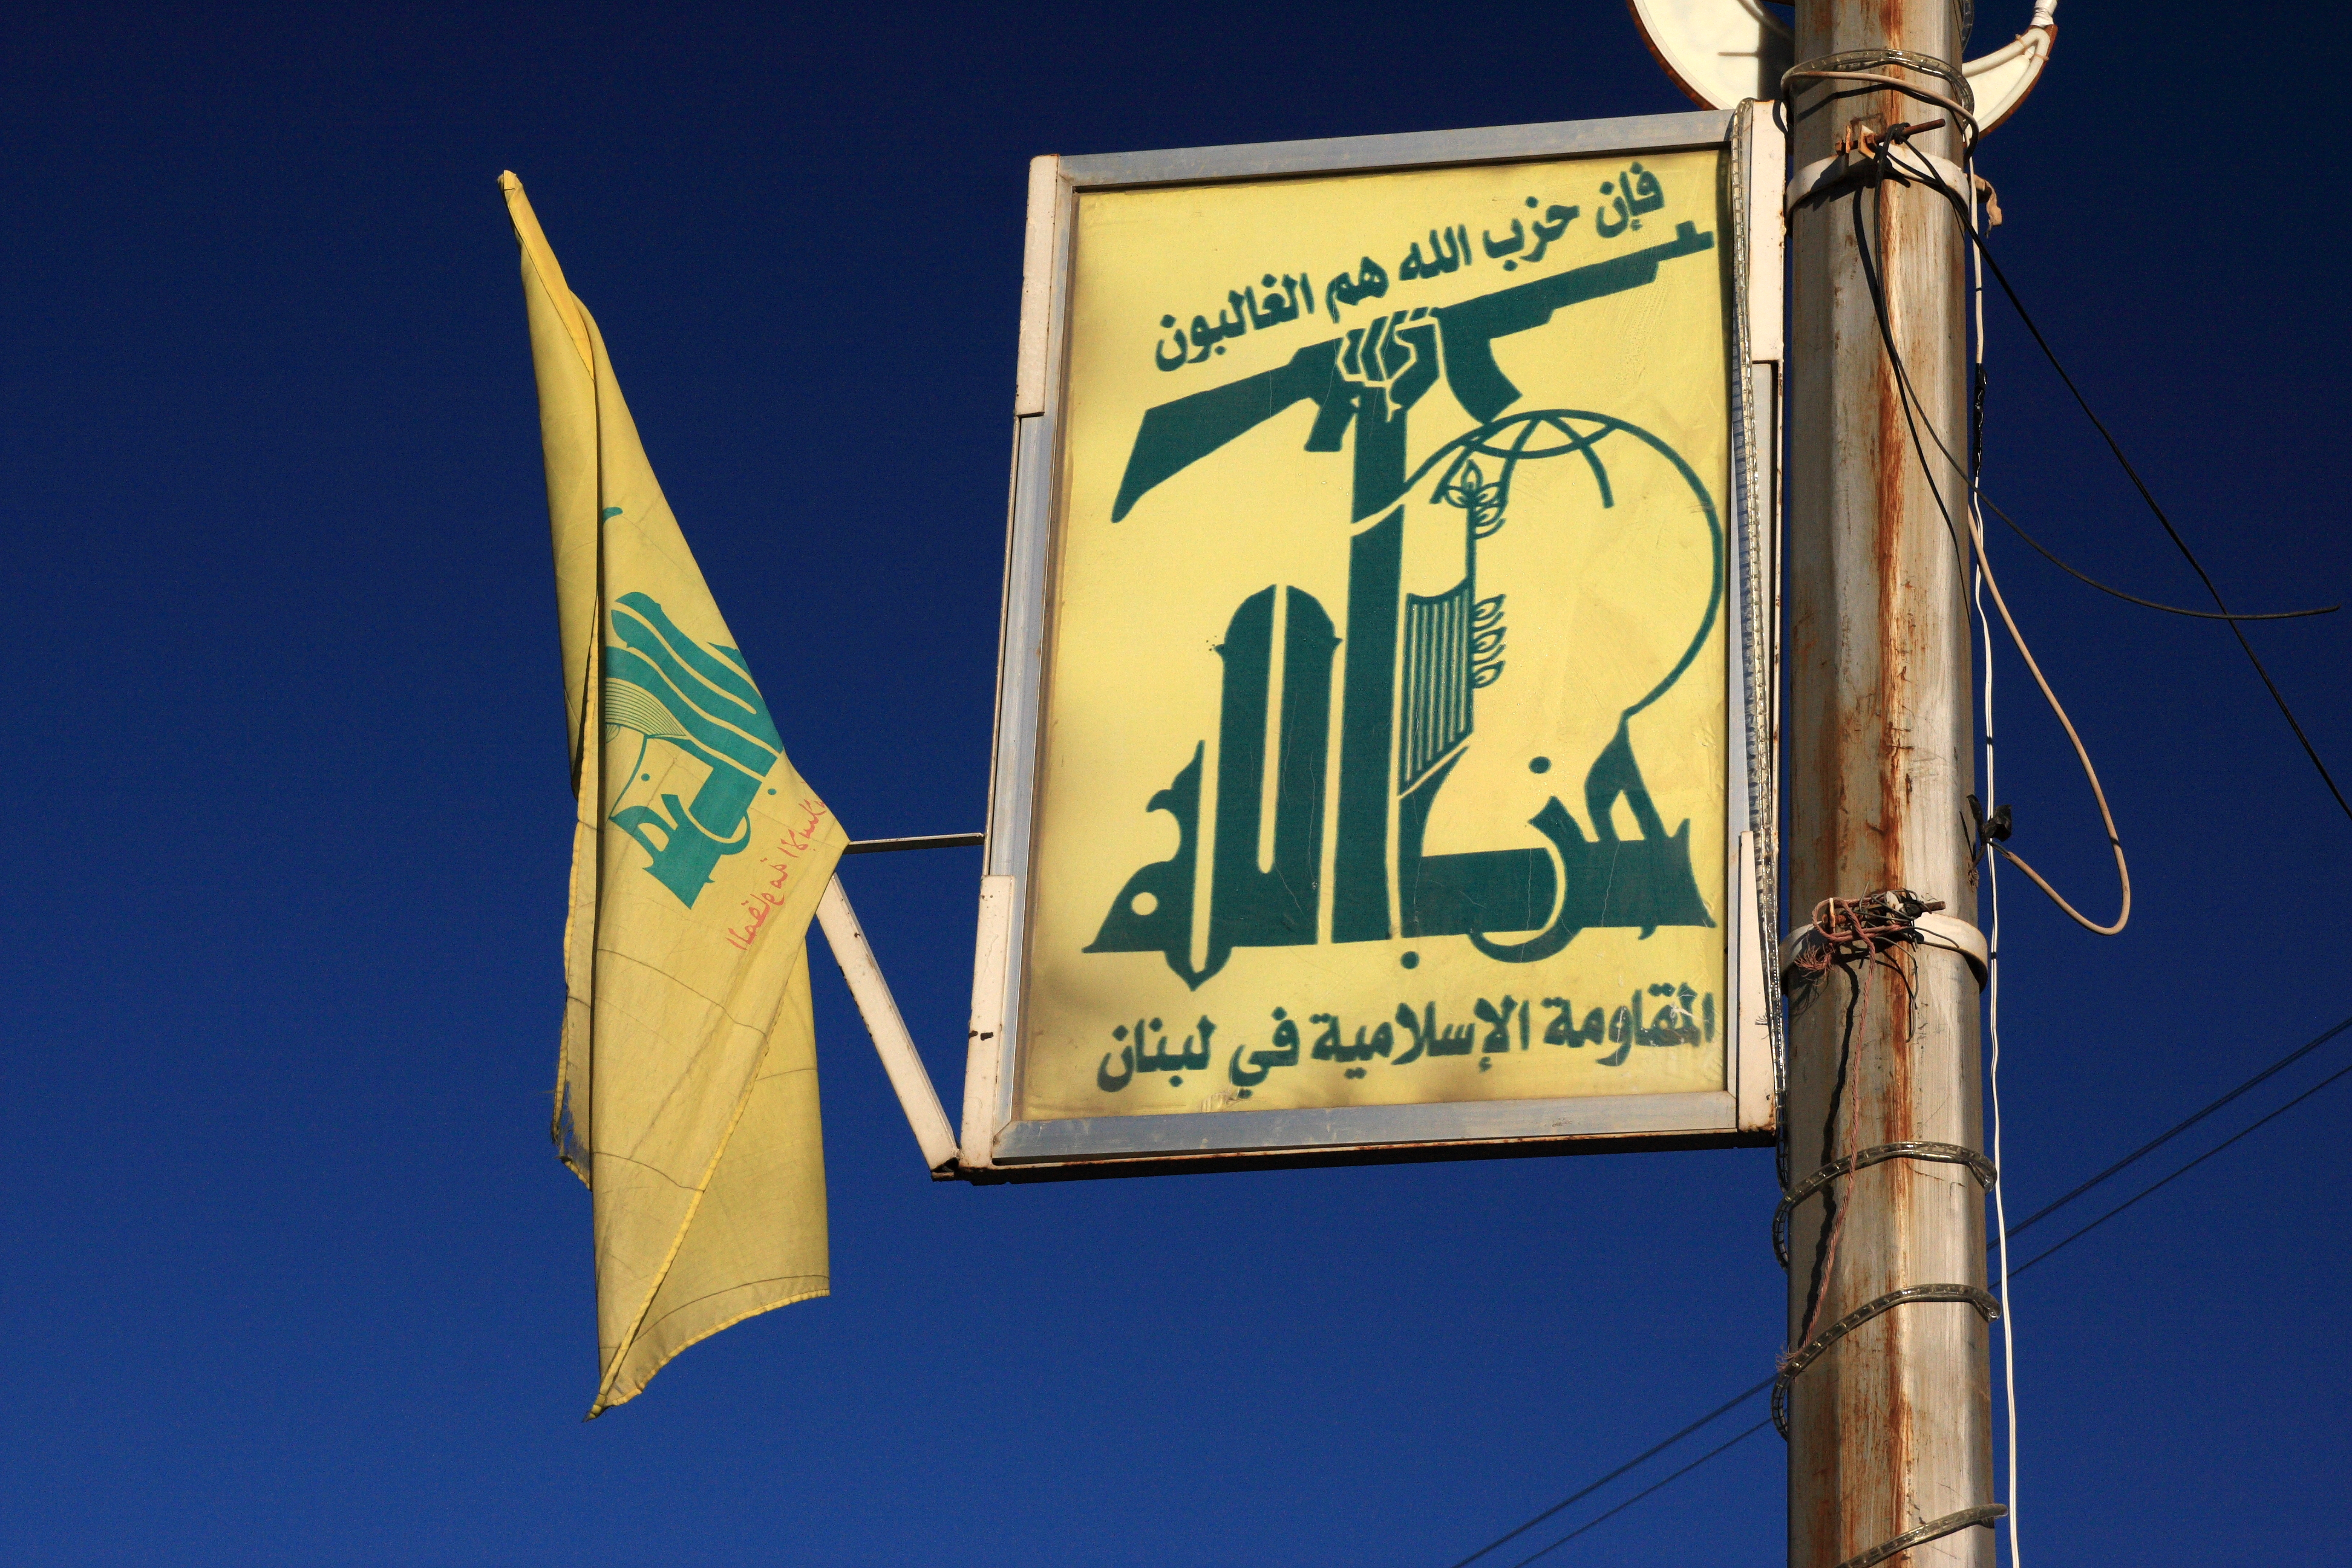 Anatomy of a Winning Insurgency: Learning From Hizballah's Victory Over Israel in the 1982-2000 South Lebanon Conflict